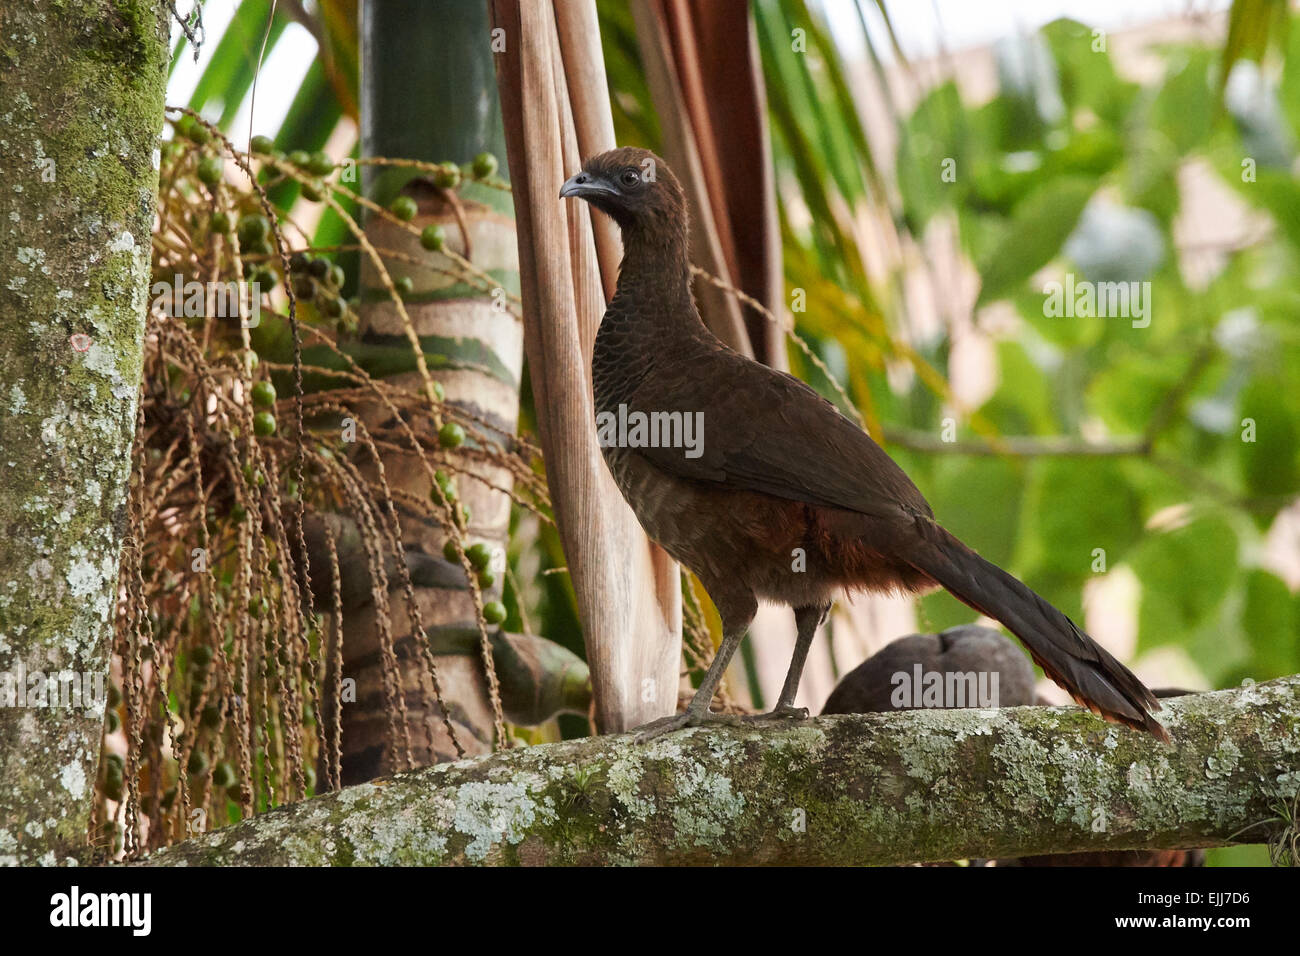 Speckled chachalaca perched on a palm tree - Stock Image